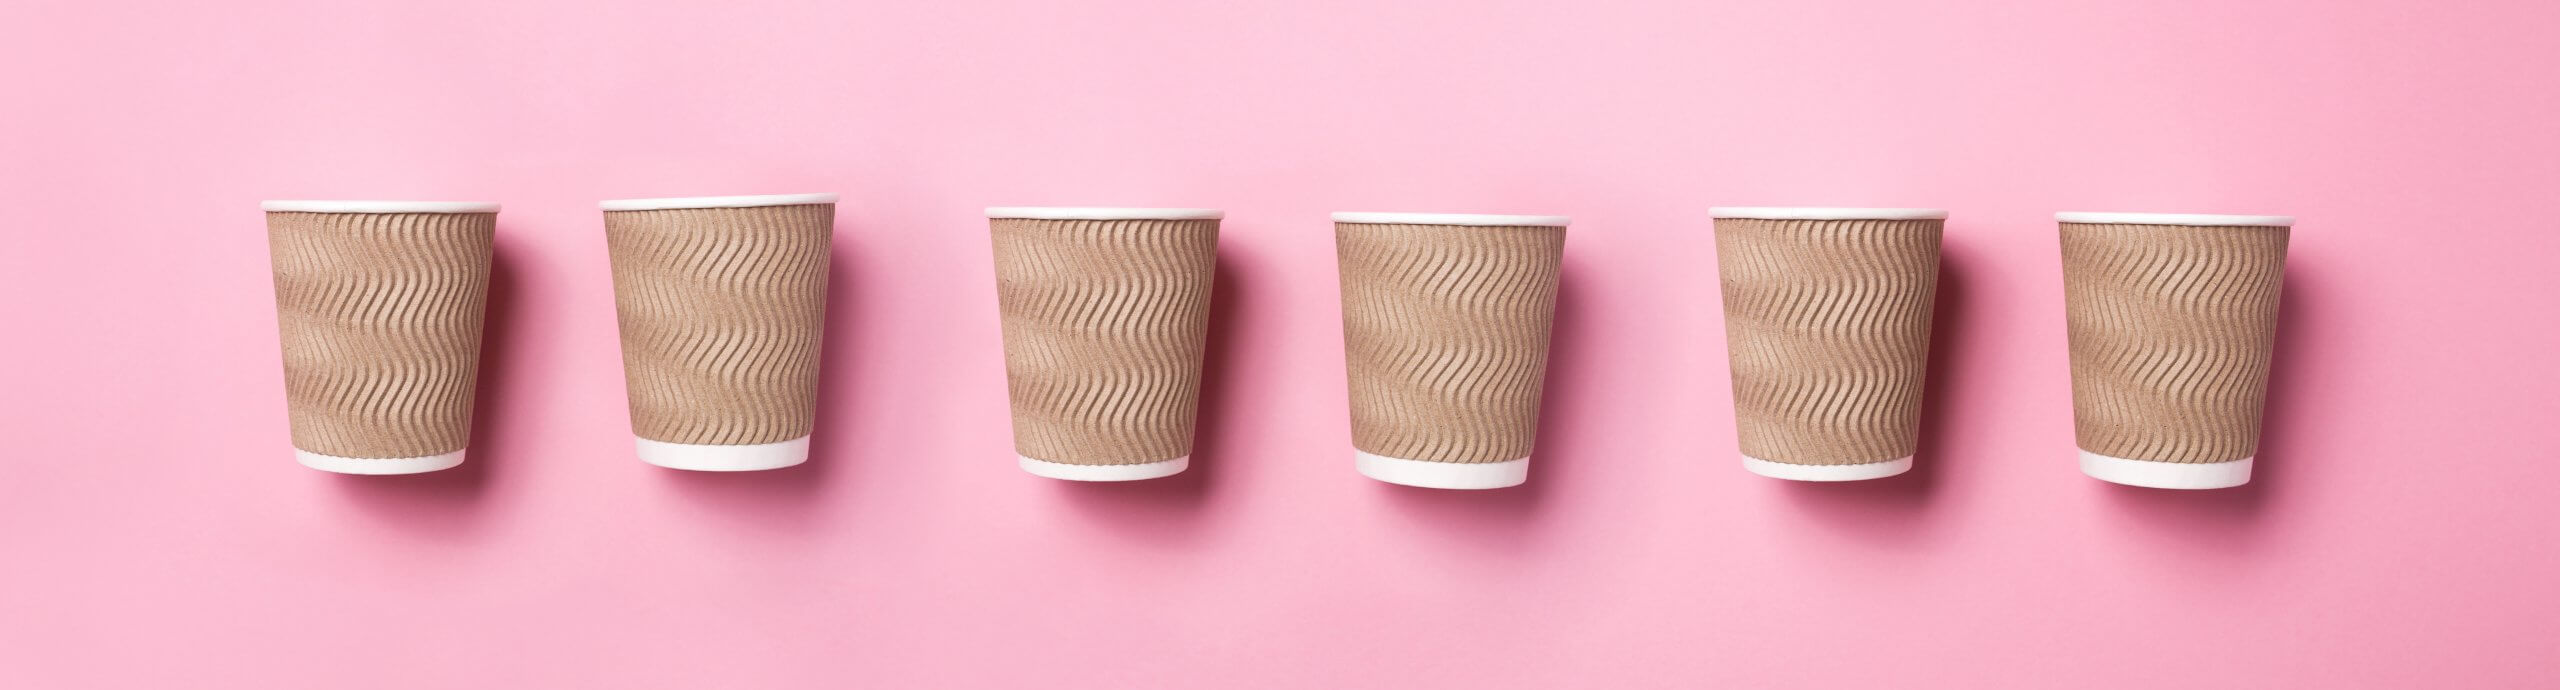 Paper coffee cups on pink background